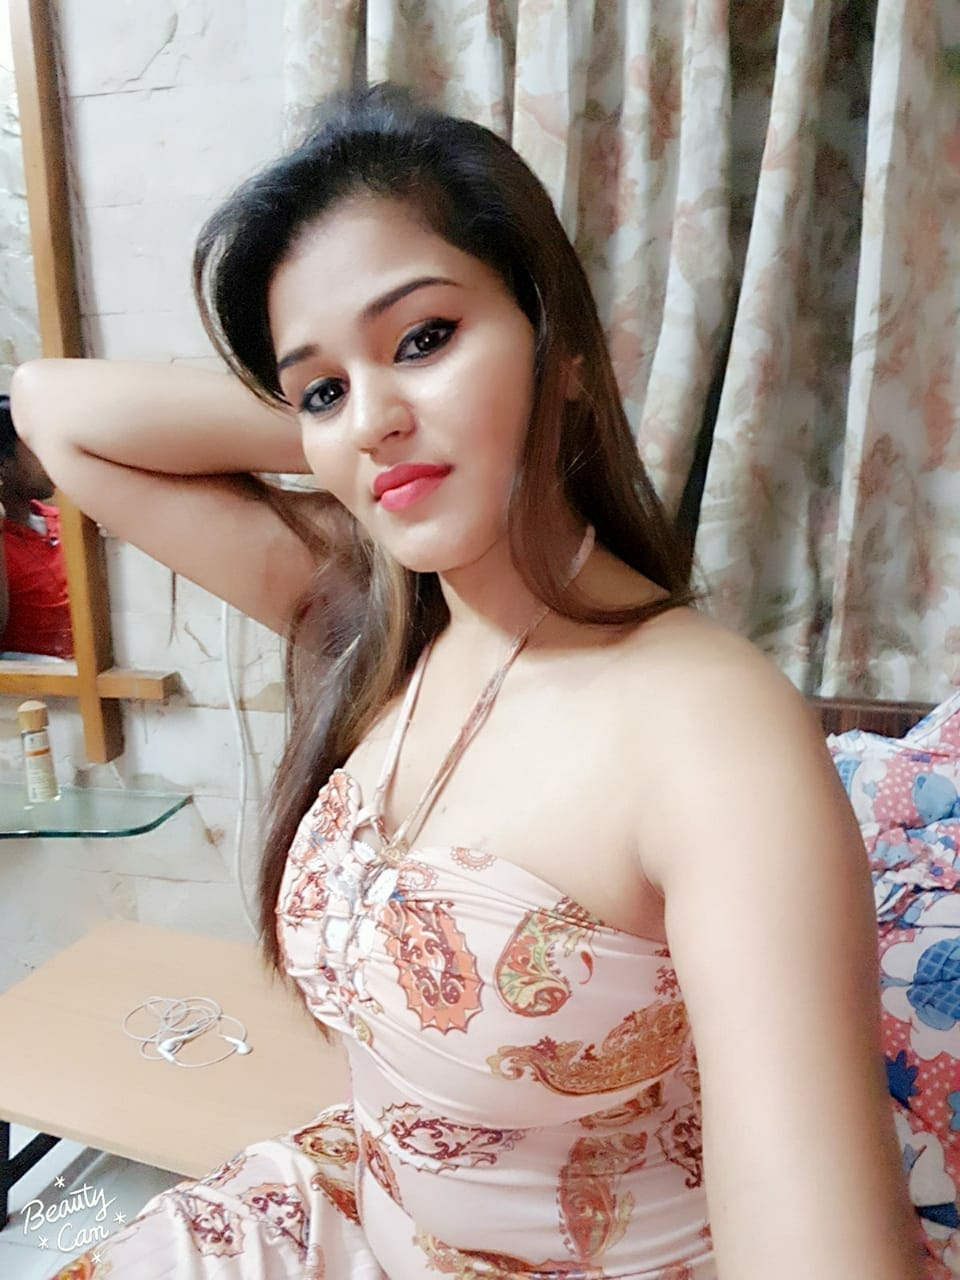 Call Girls In  in matunga